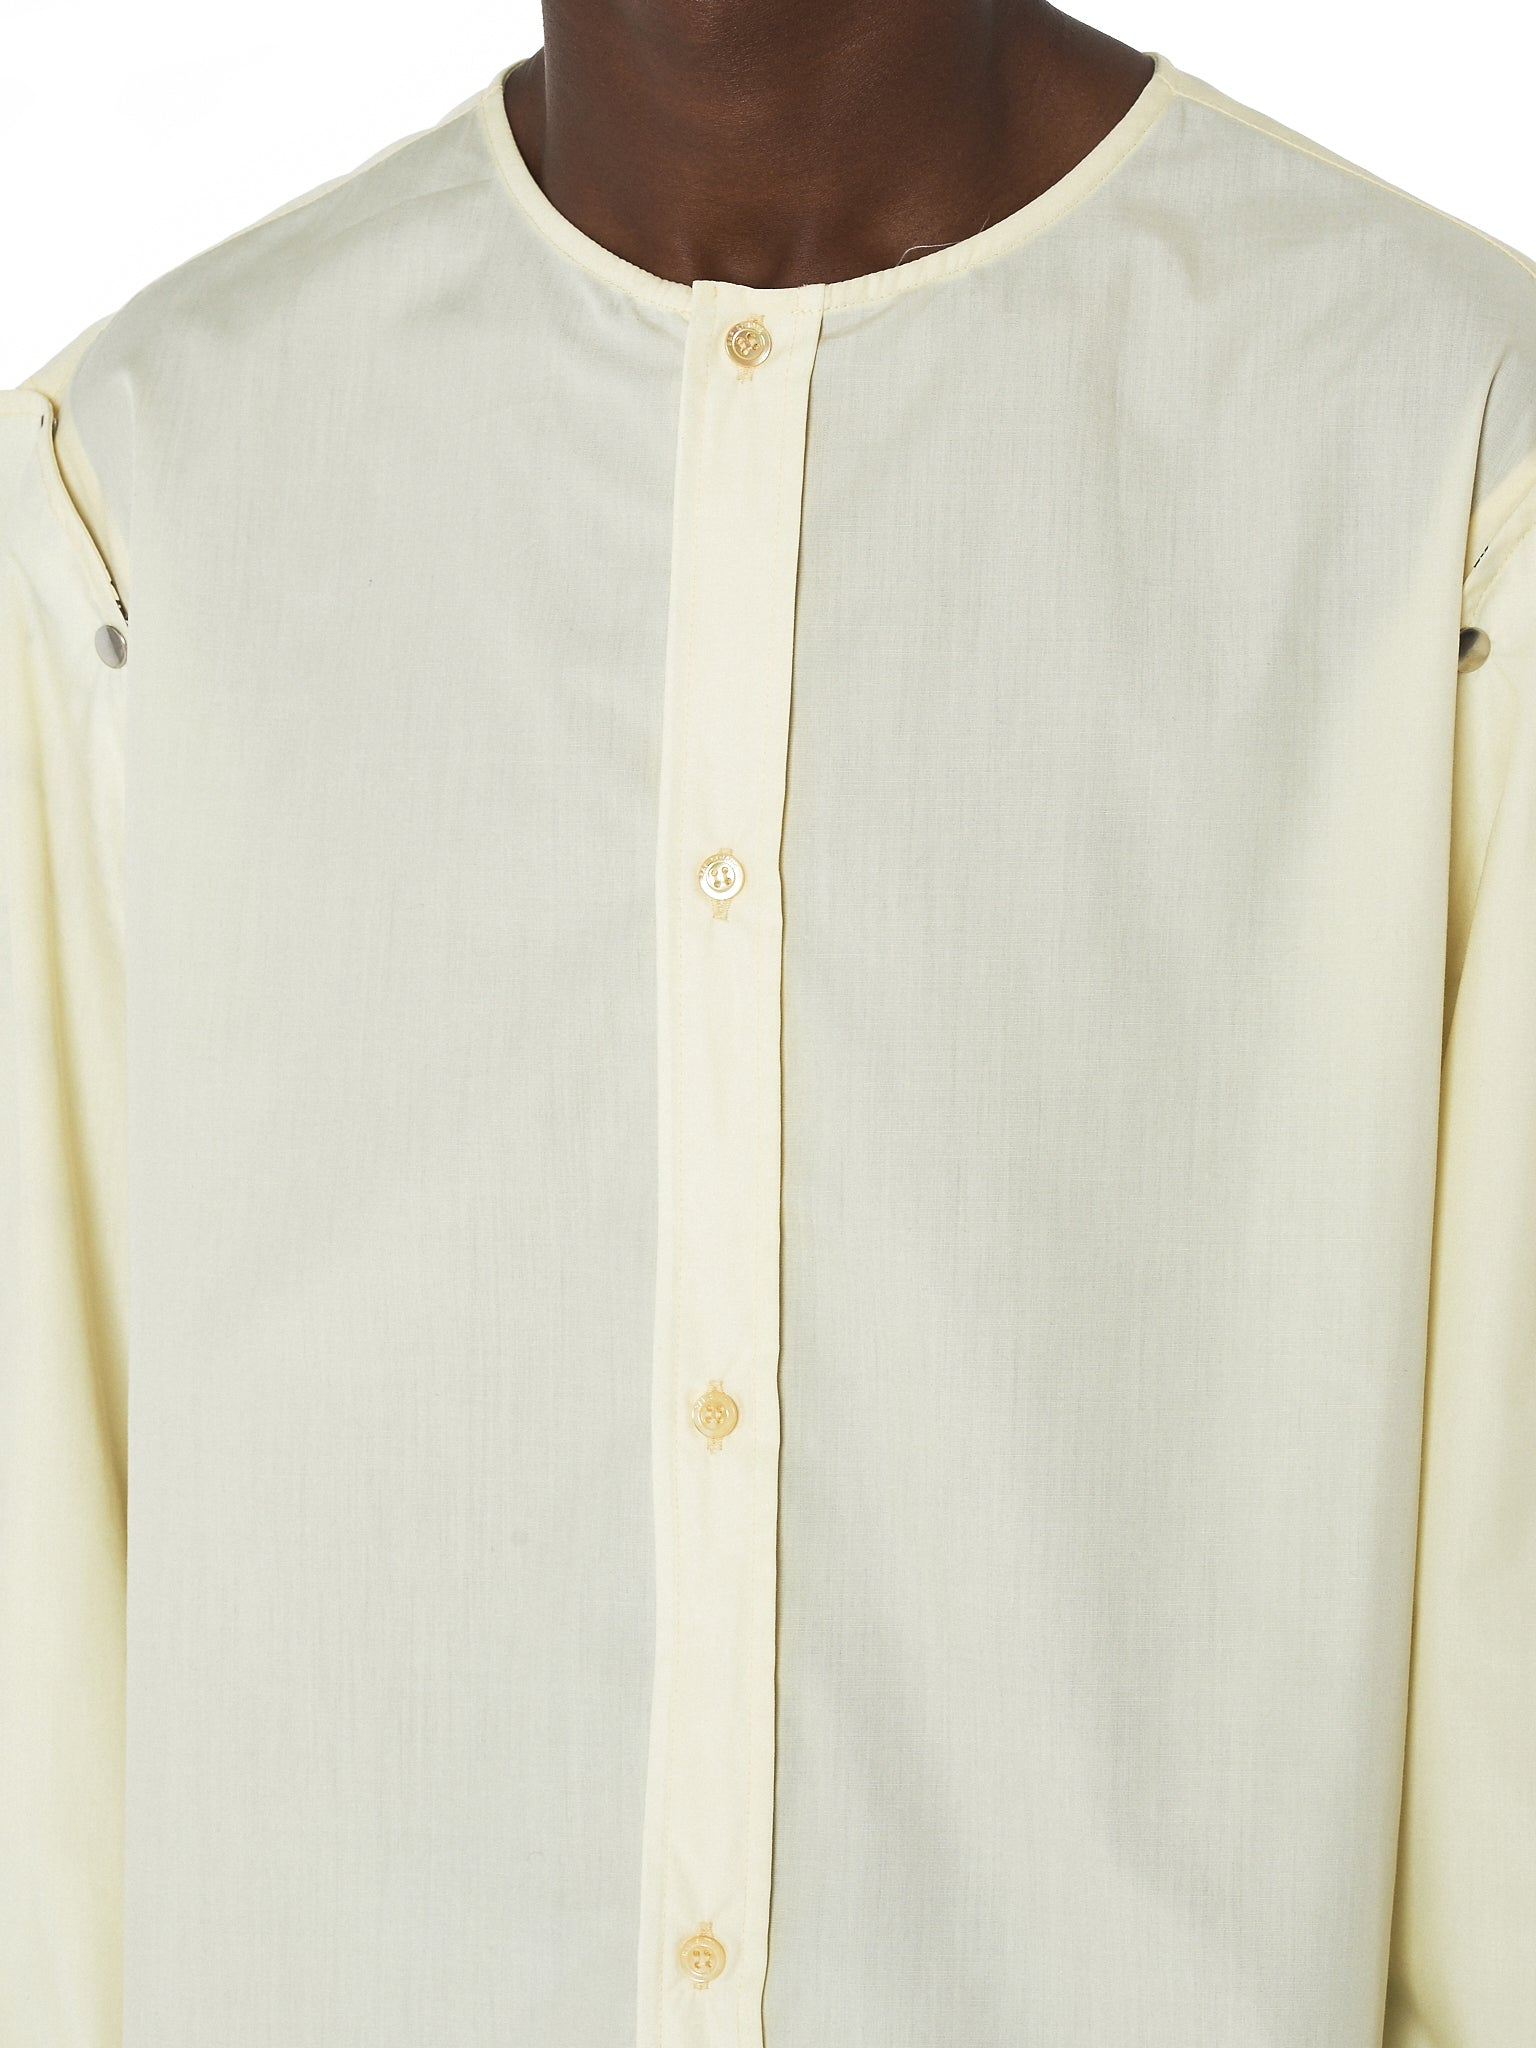 Raf Simons Deconstructed Shirt - Hlorenzo Detail 1